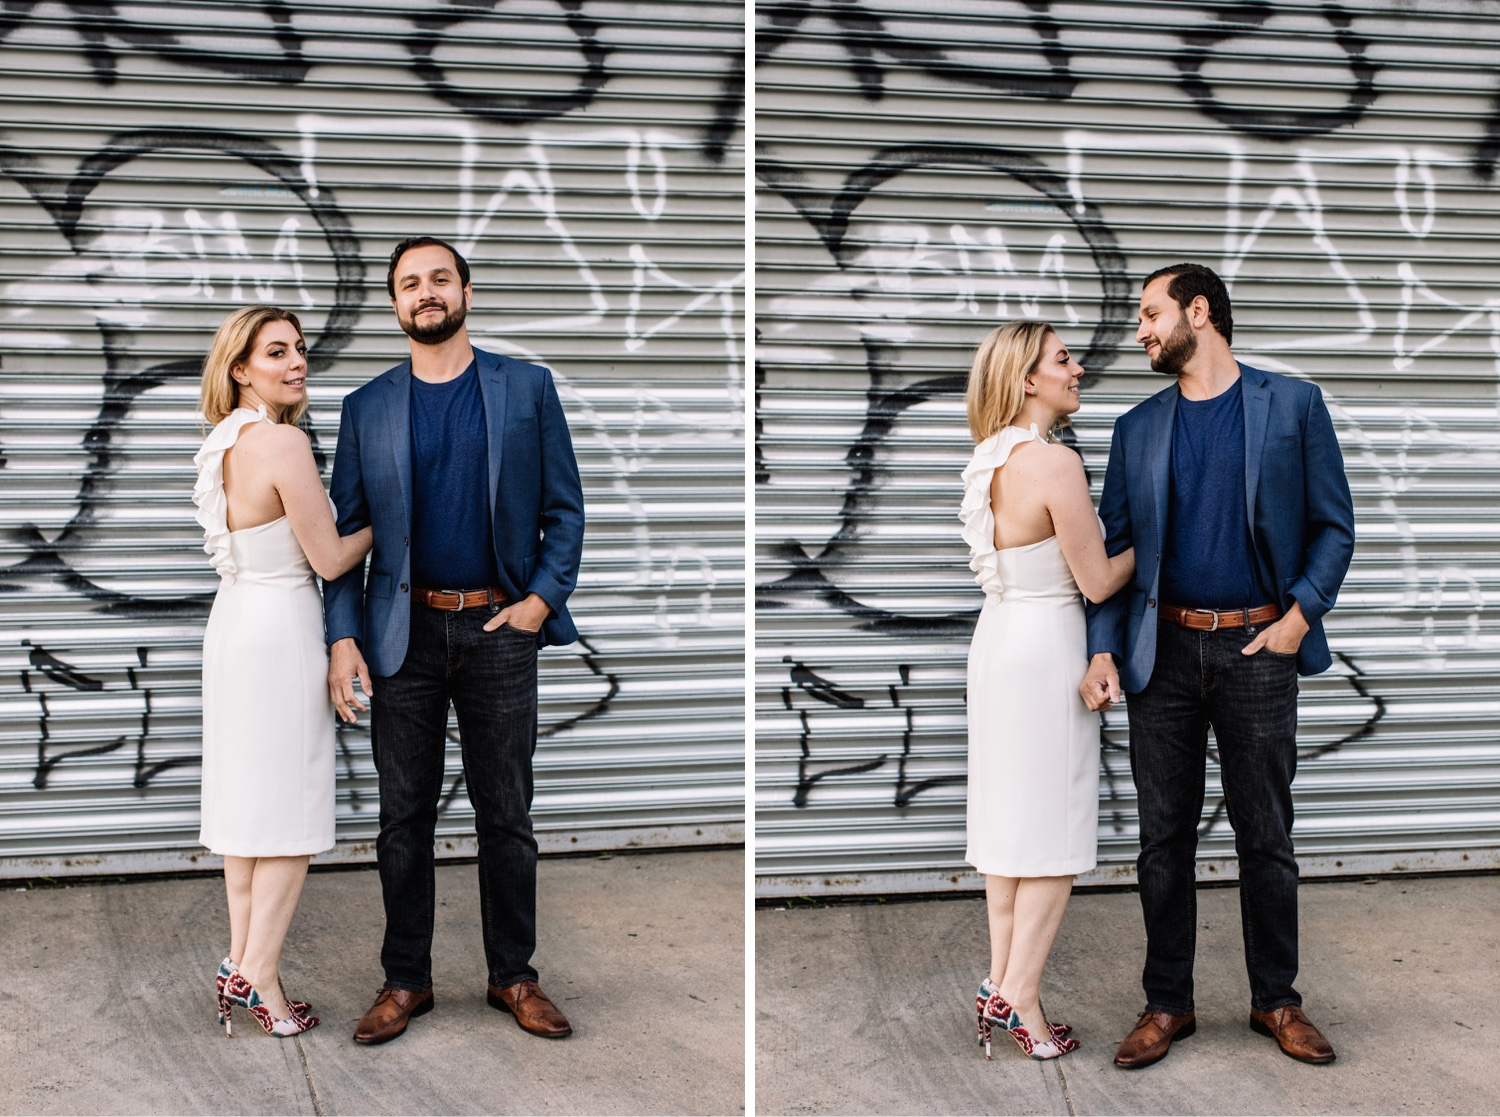 Stylish New York City Engagement Photographer